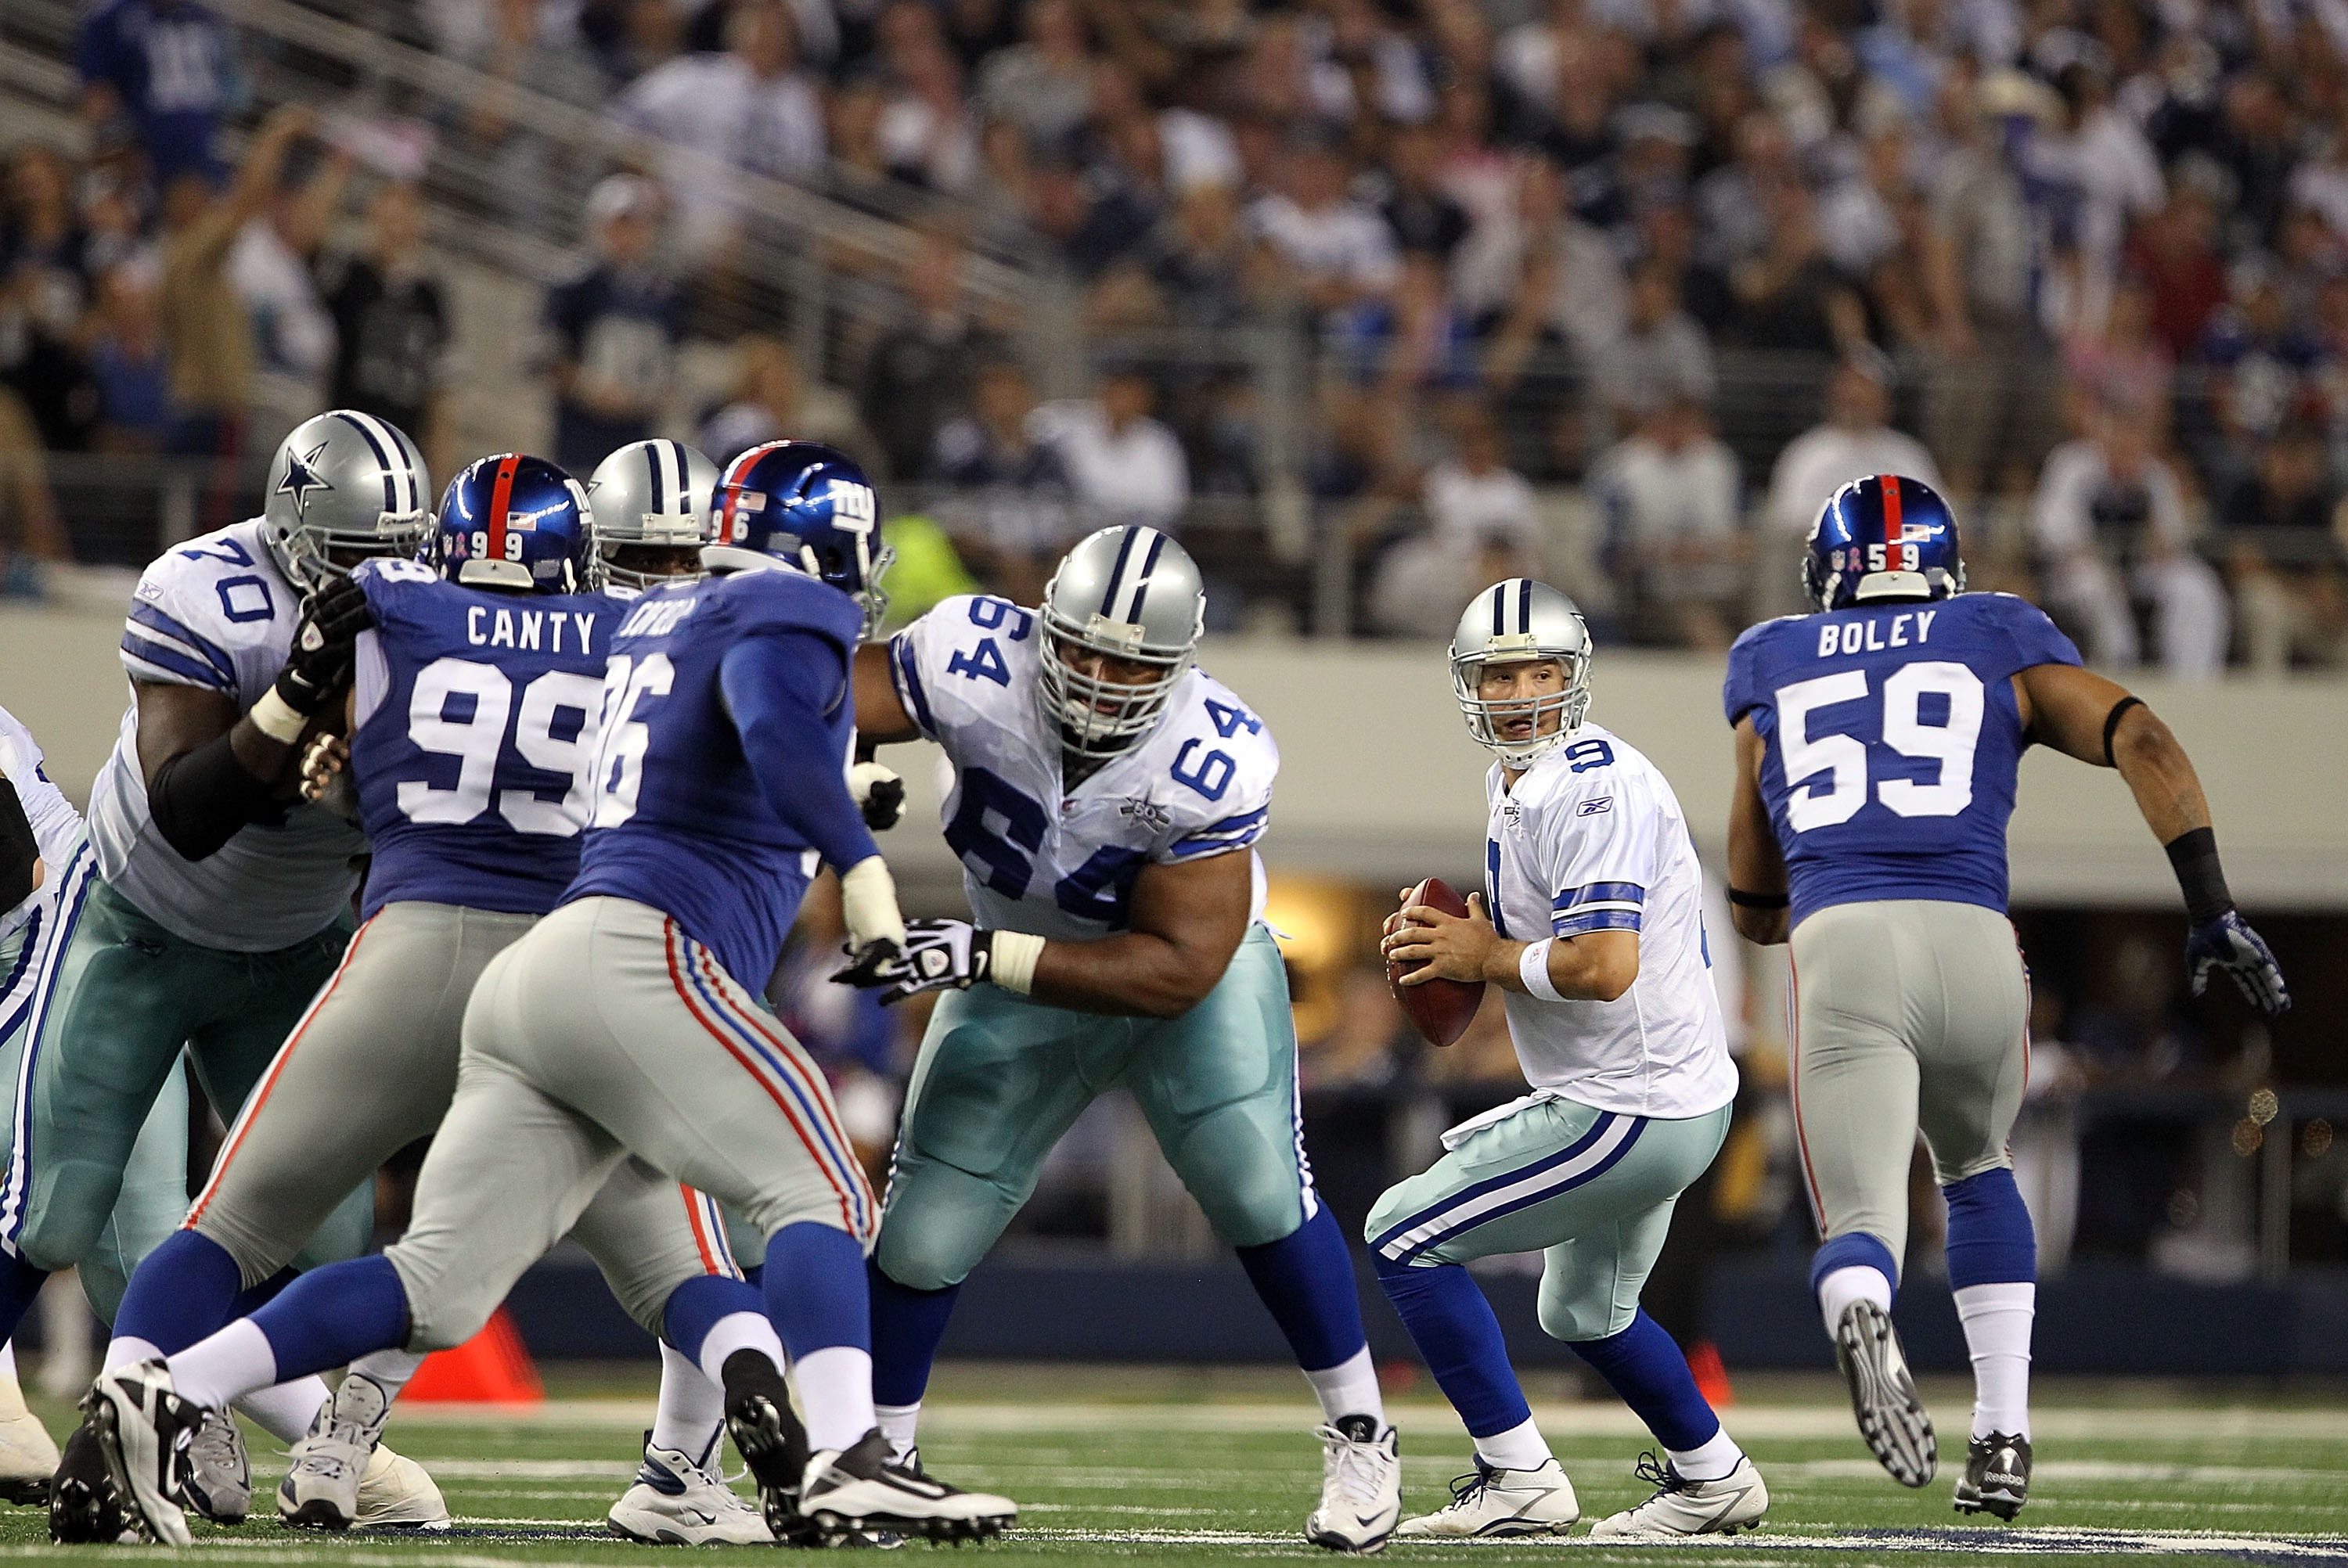 ARLINGTON, TX - OCTOBER 25:  Quarterback Tony Romo #9 of the Dallas Cowboys drops back to pass before a hit by Michael Boley #59 of the New York Giants in the second quarter at Cowboys Stadium on October 25, 2010 in Arlington, Texas.  Romo did not return